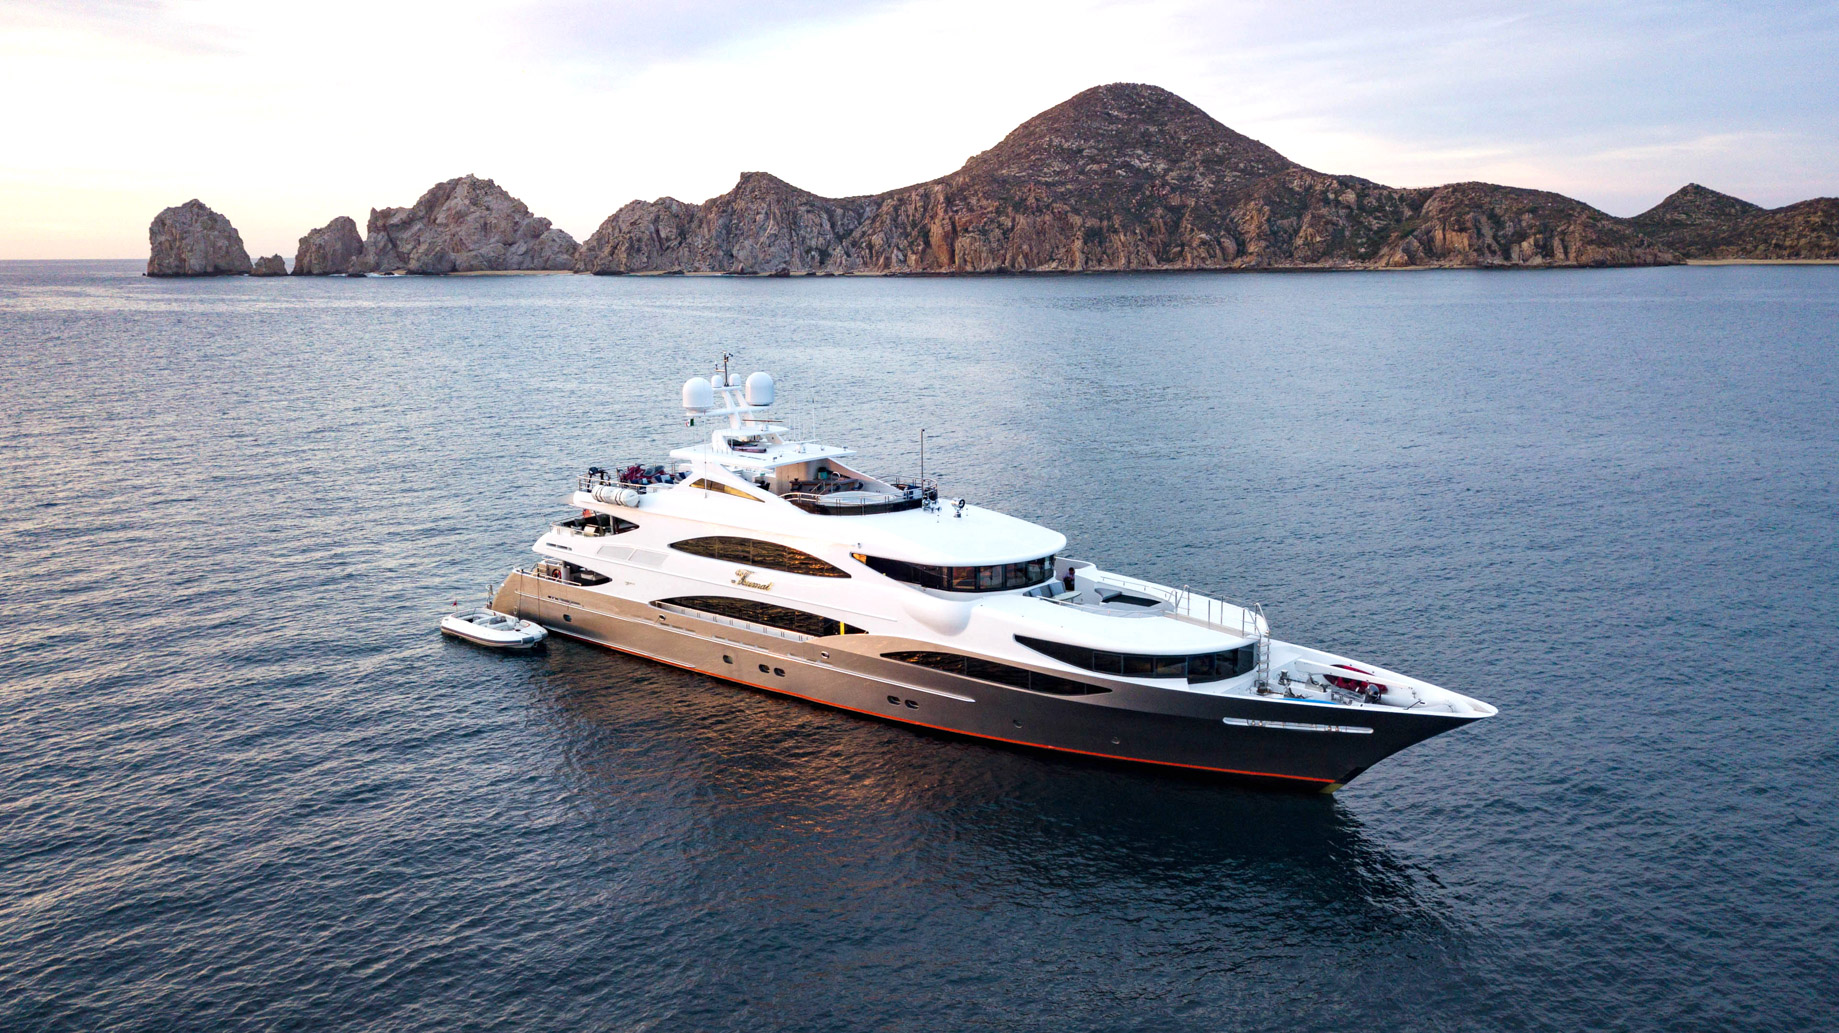 Tsumat Luxury Yacht - Some of The Best American-Made Yachts For Sale - Trinity Yachts